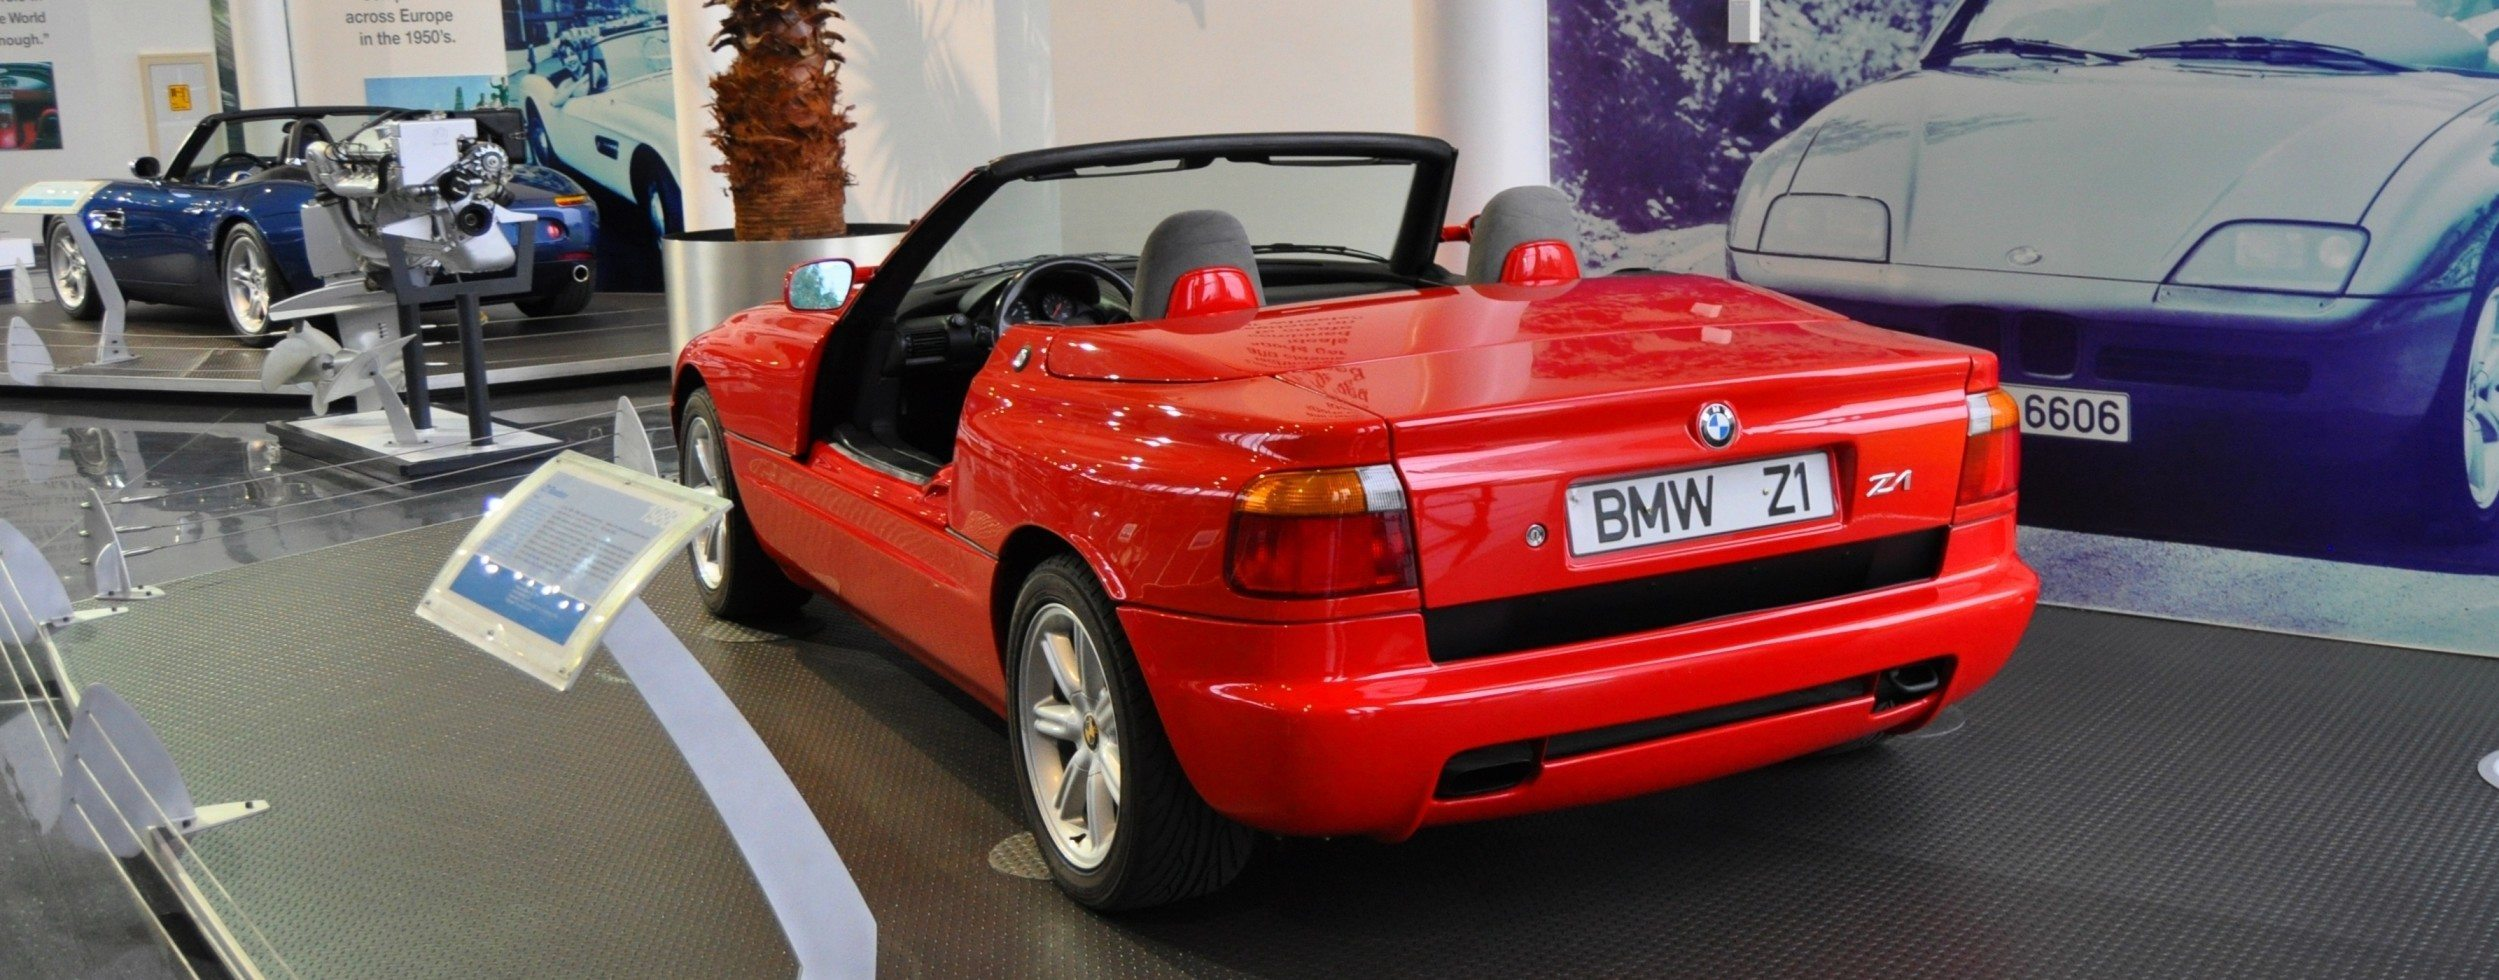 updated with 36 new photos 1989 bmw z1 at zentrum in spartanburg sc. Black Bedroom Furniture Sets. Home Design Ideas